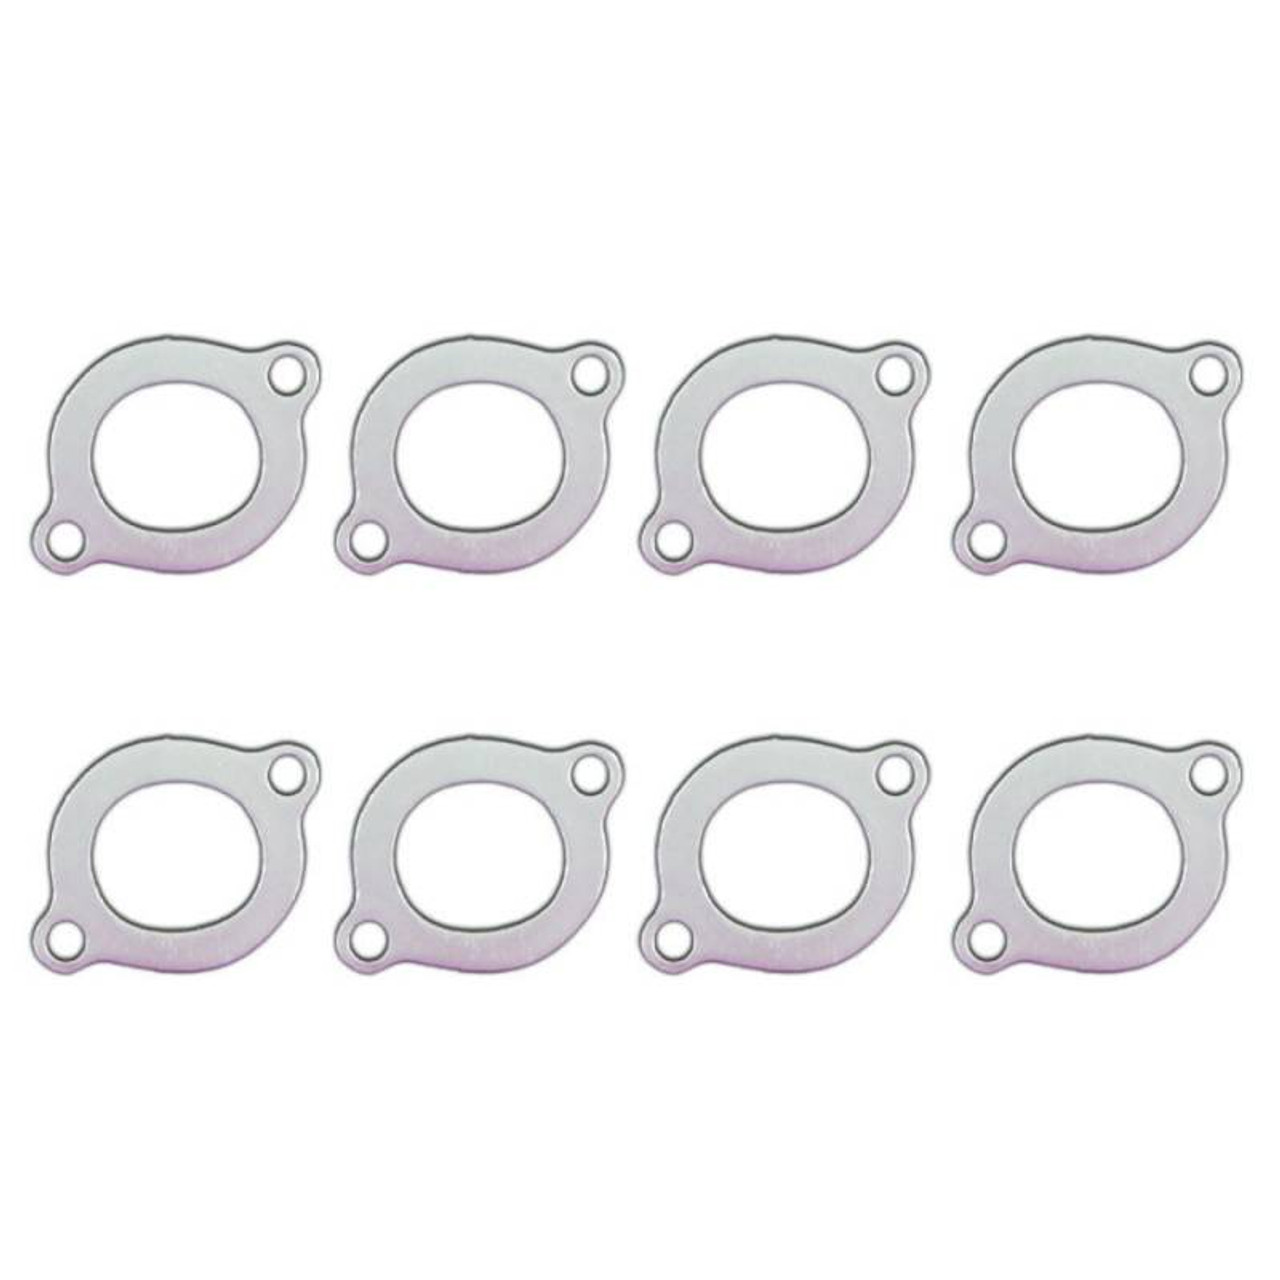 Remflex Exhaust Gaskets Small Block Chevy W/CFE SBX 4.5